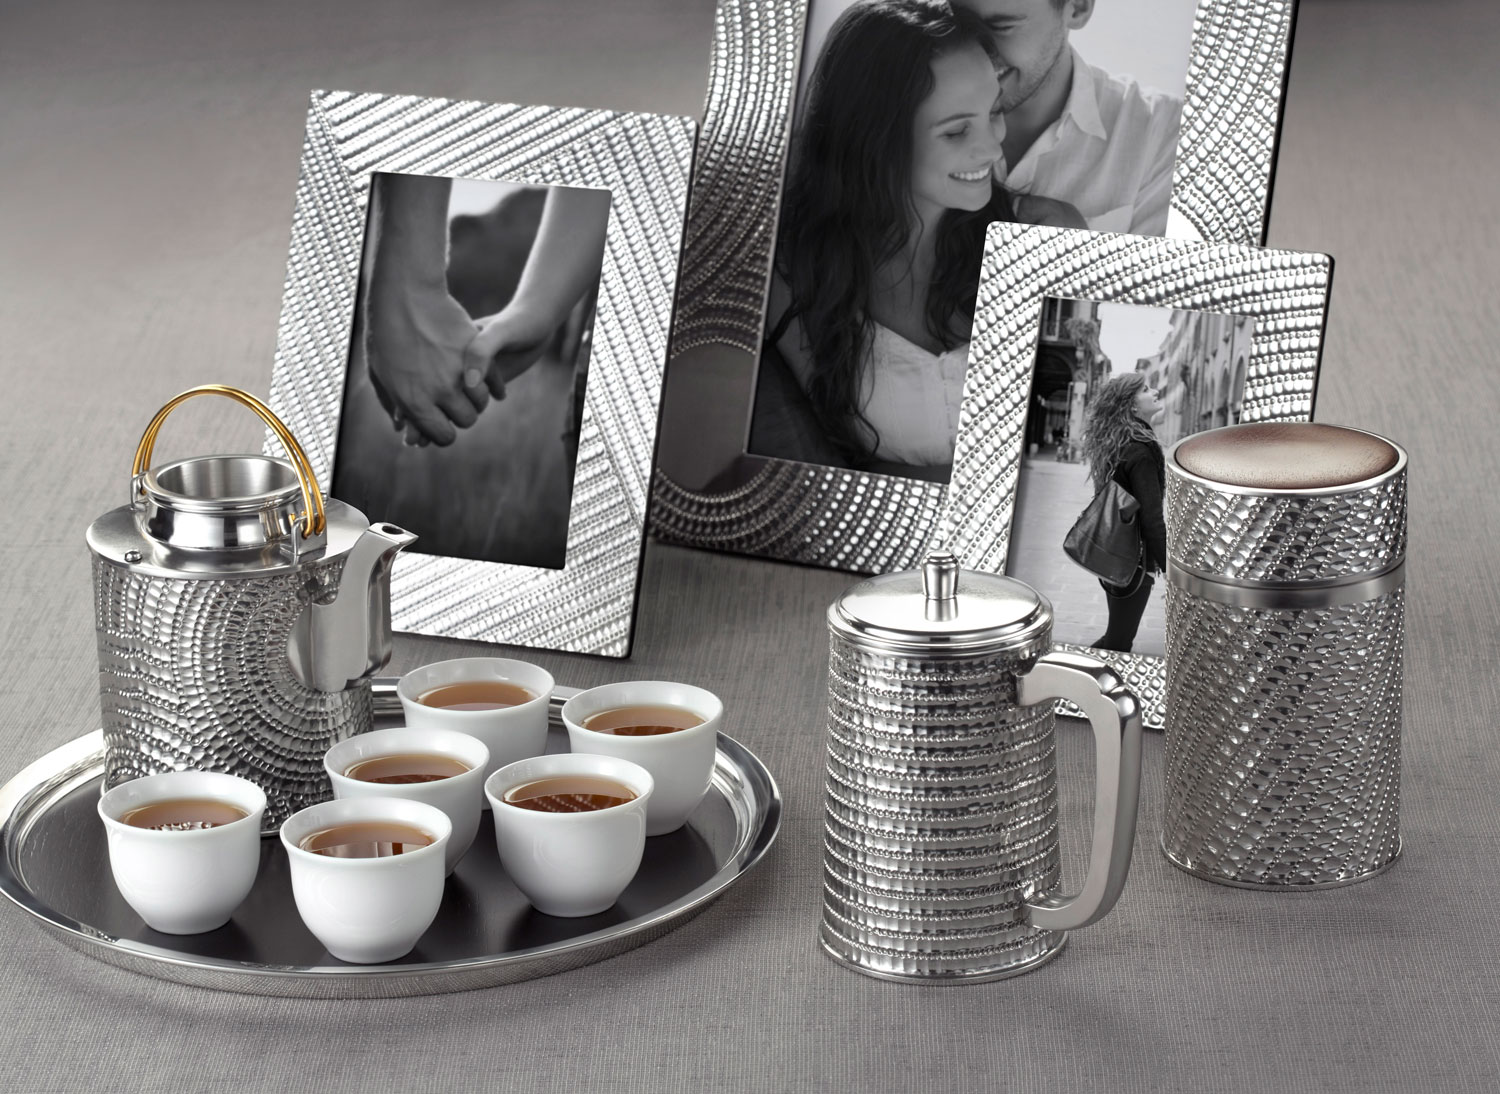 Royal Selangor Celebrates 130 Years with the debut of the 8515 Collection